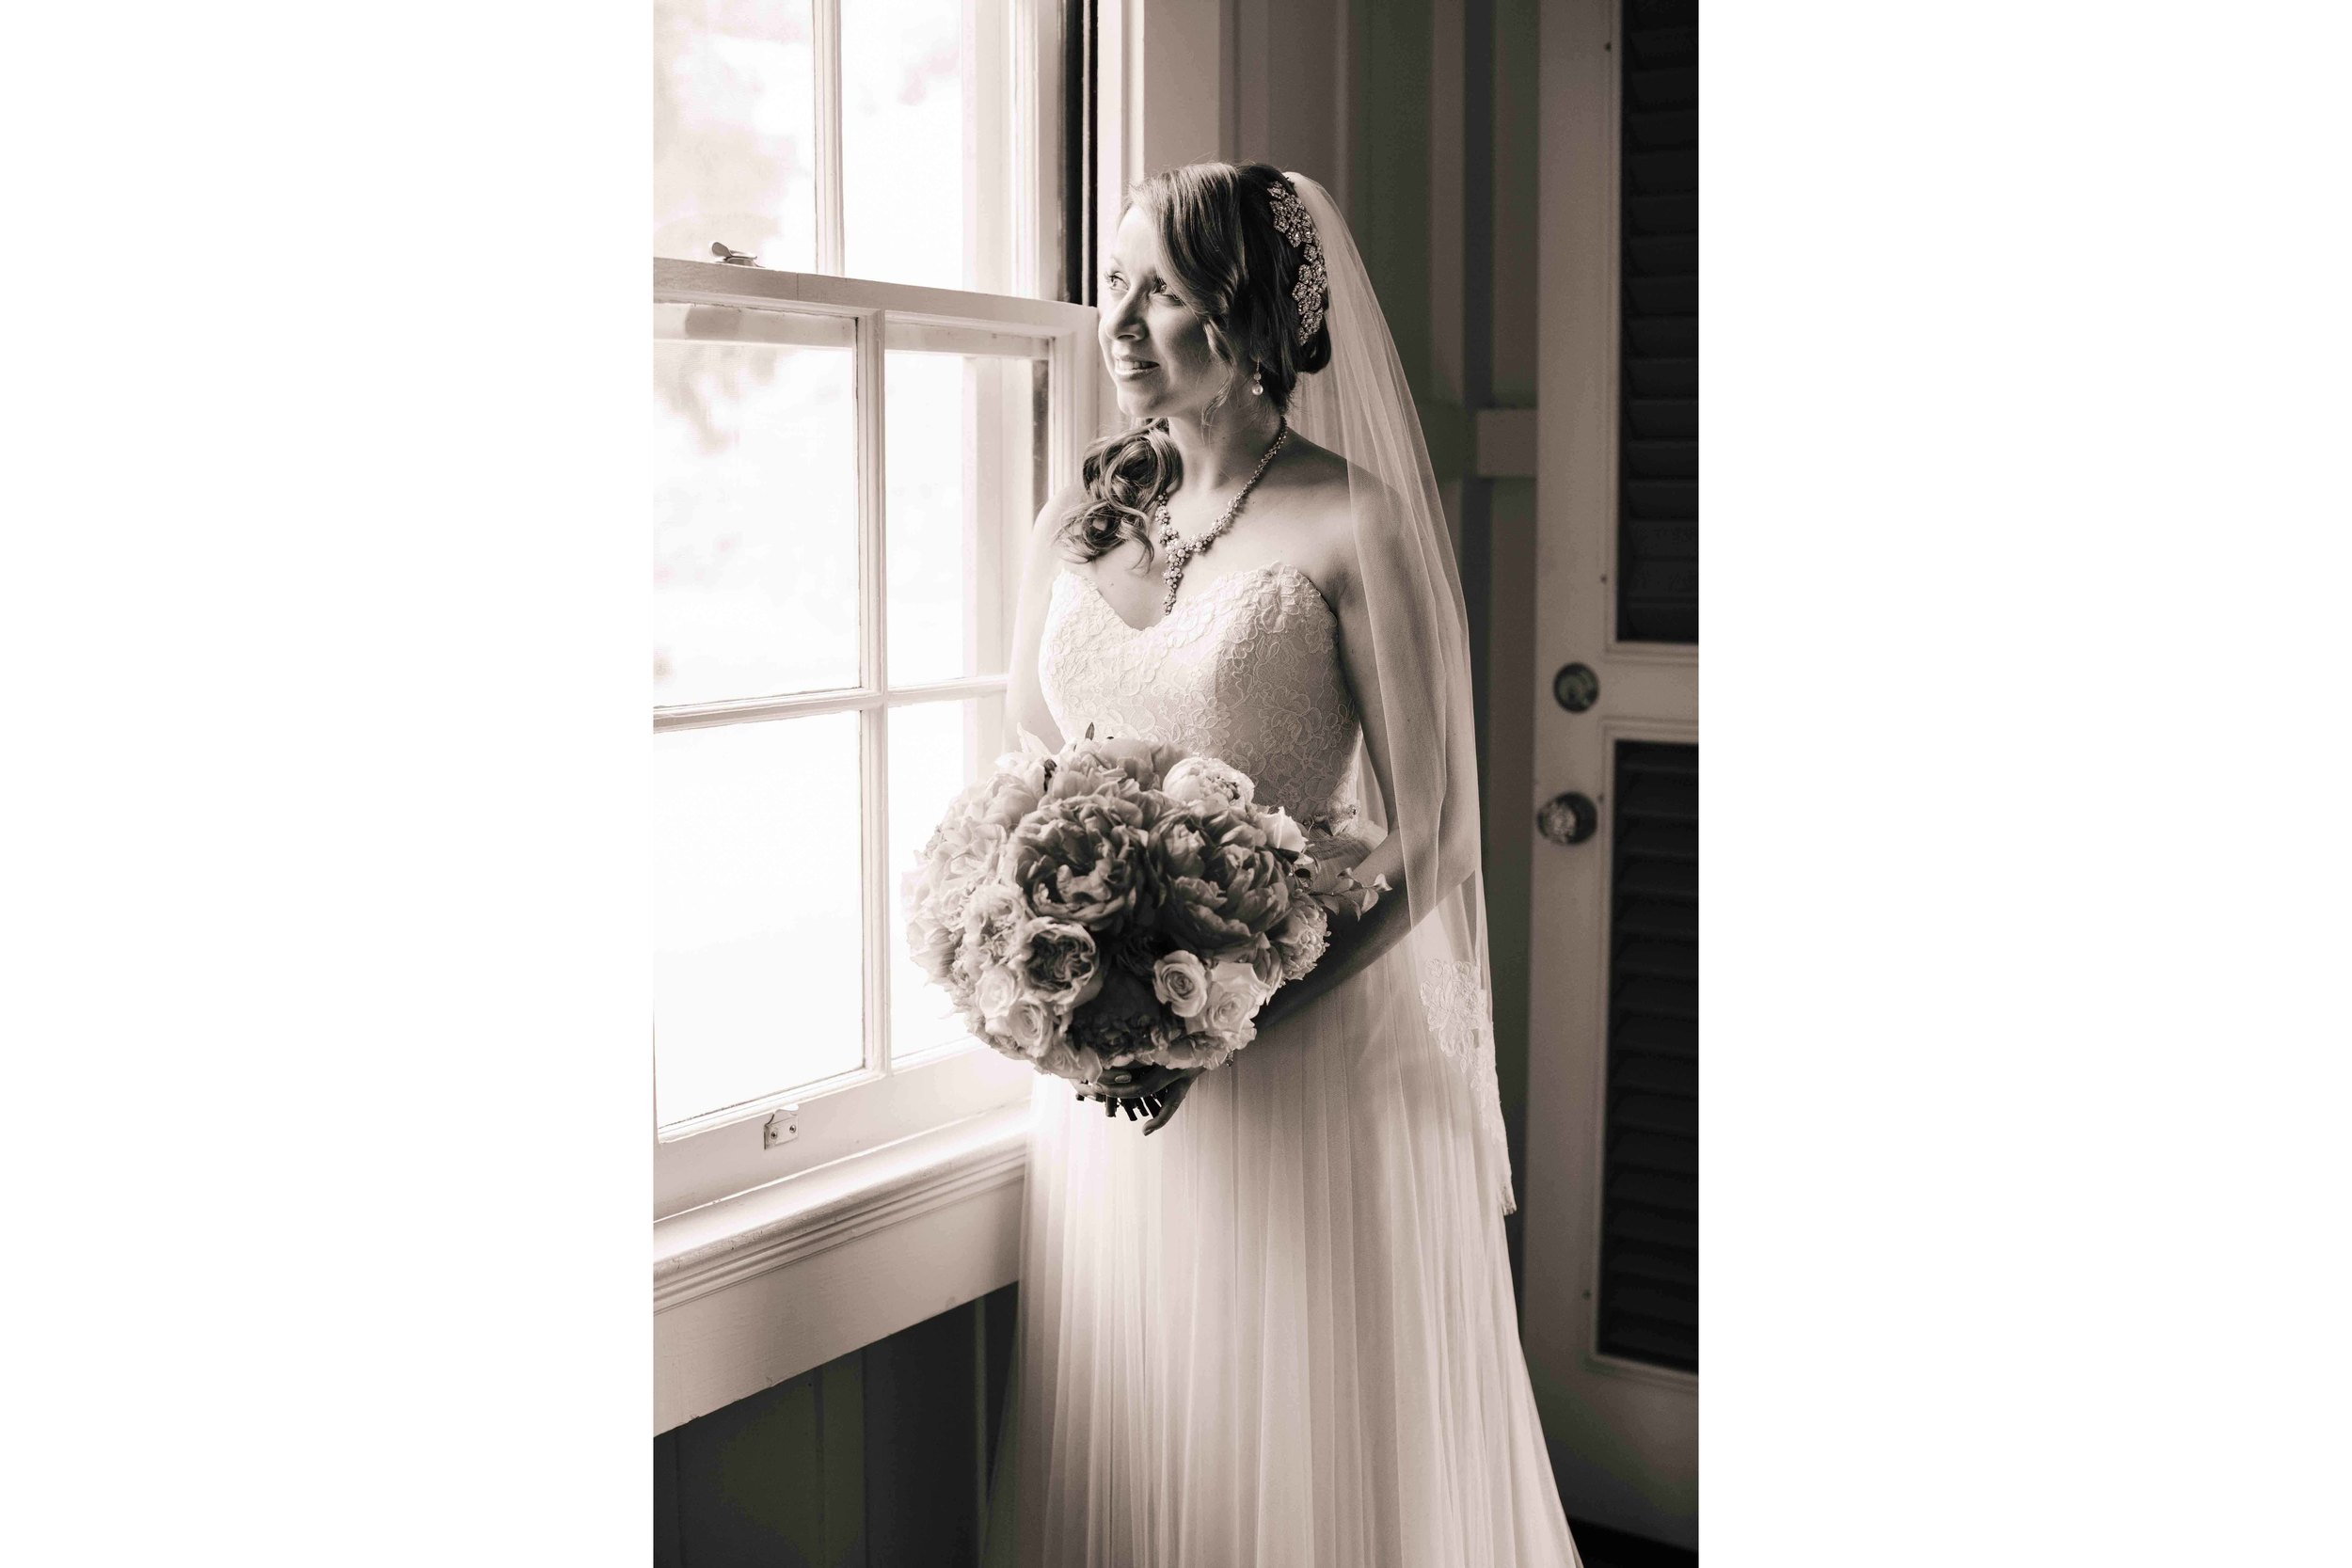 Black and White Photograph of Bride at Dillingham Ranch